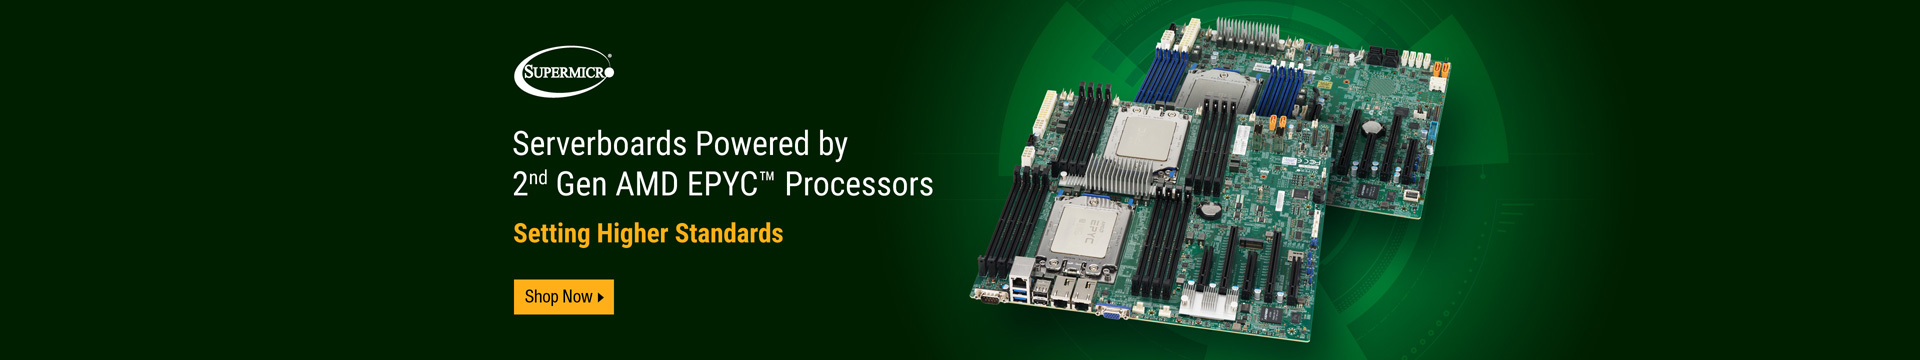 Serverboards Powered by 2nd Gen AMD EPYC™ Processors